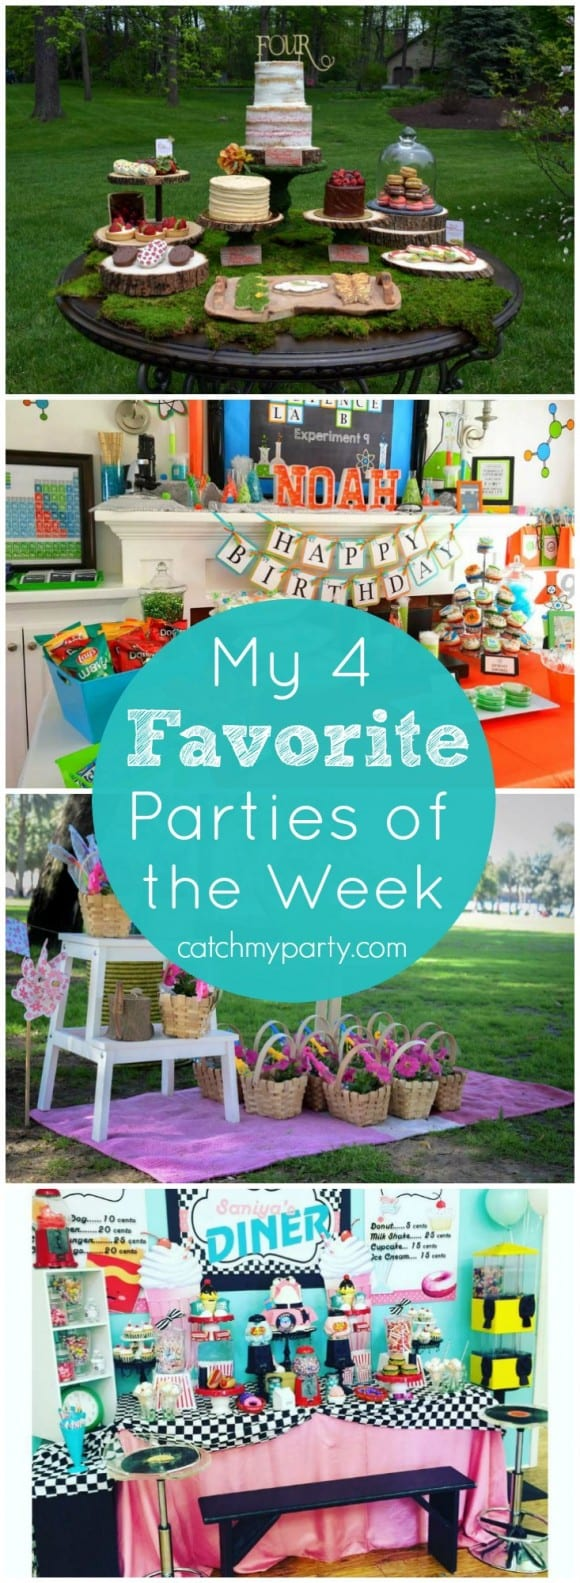 My 4 Favorite Parties of the Week: an enchanted forest party, a science party, a picnic party, and 50's diner party! | CatchMyParty.com